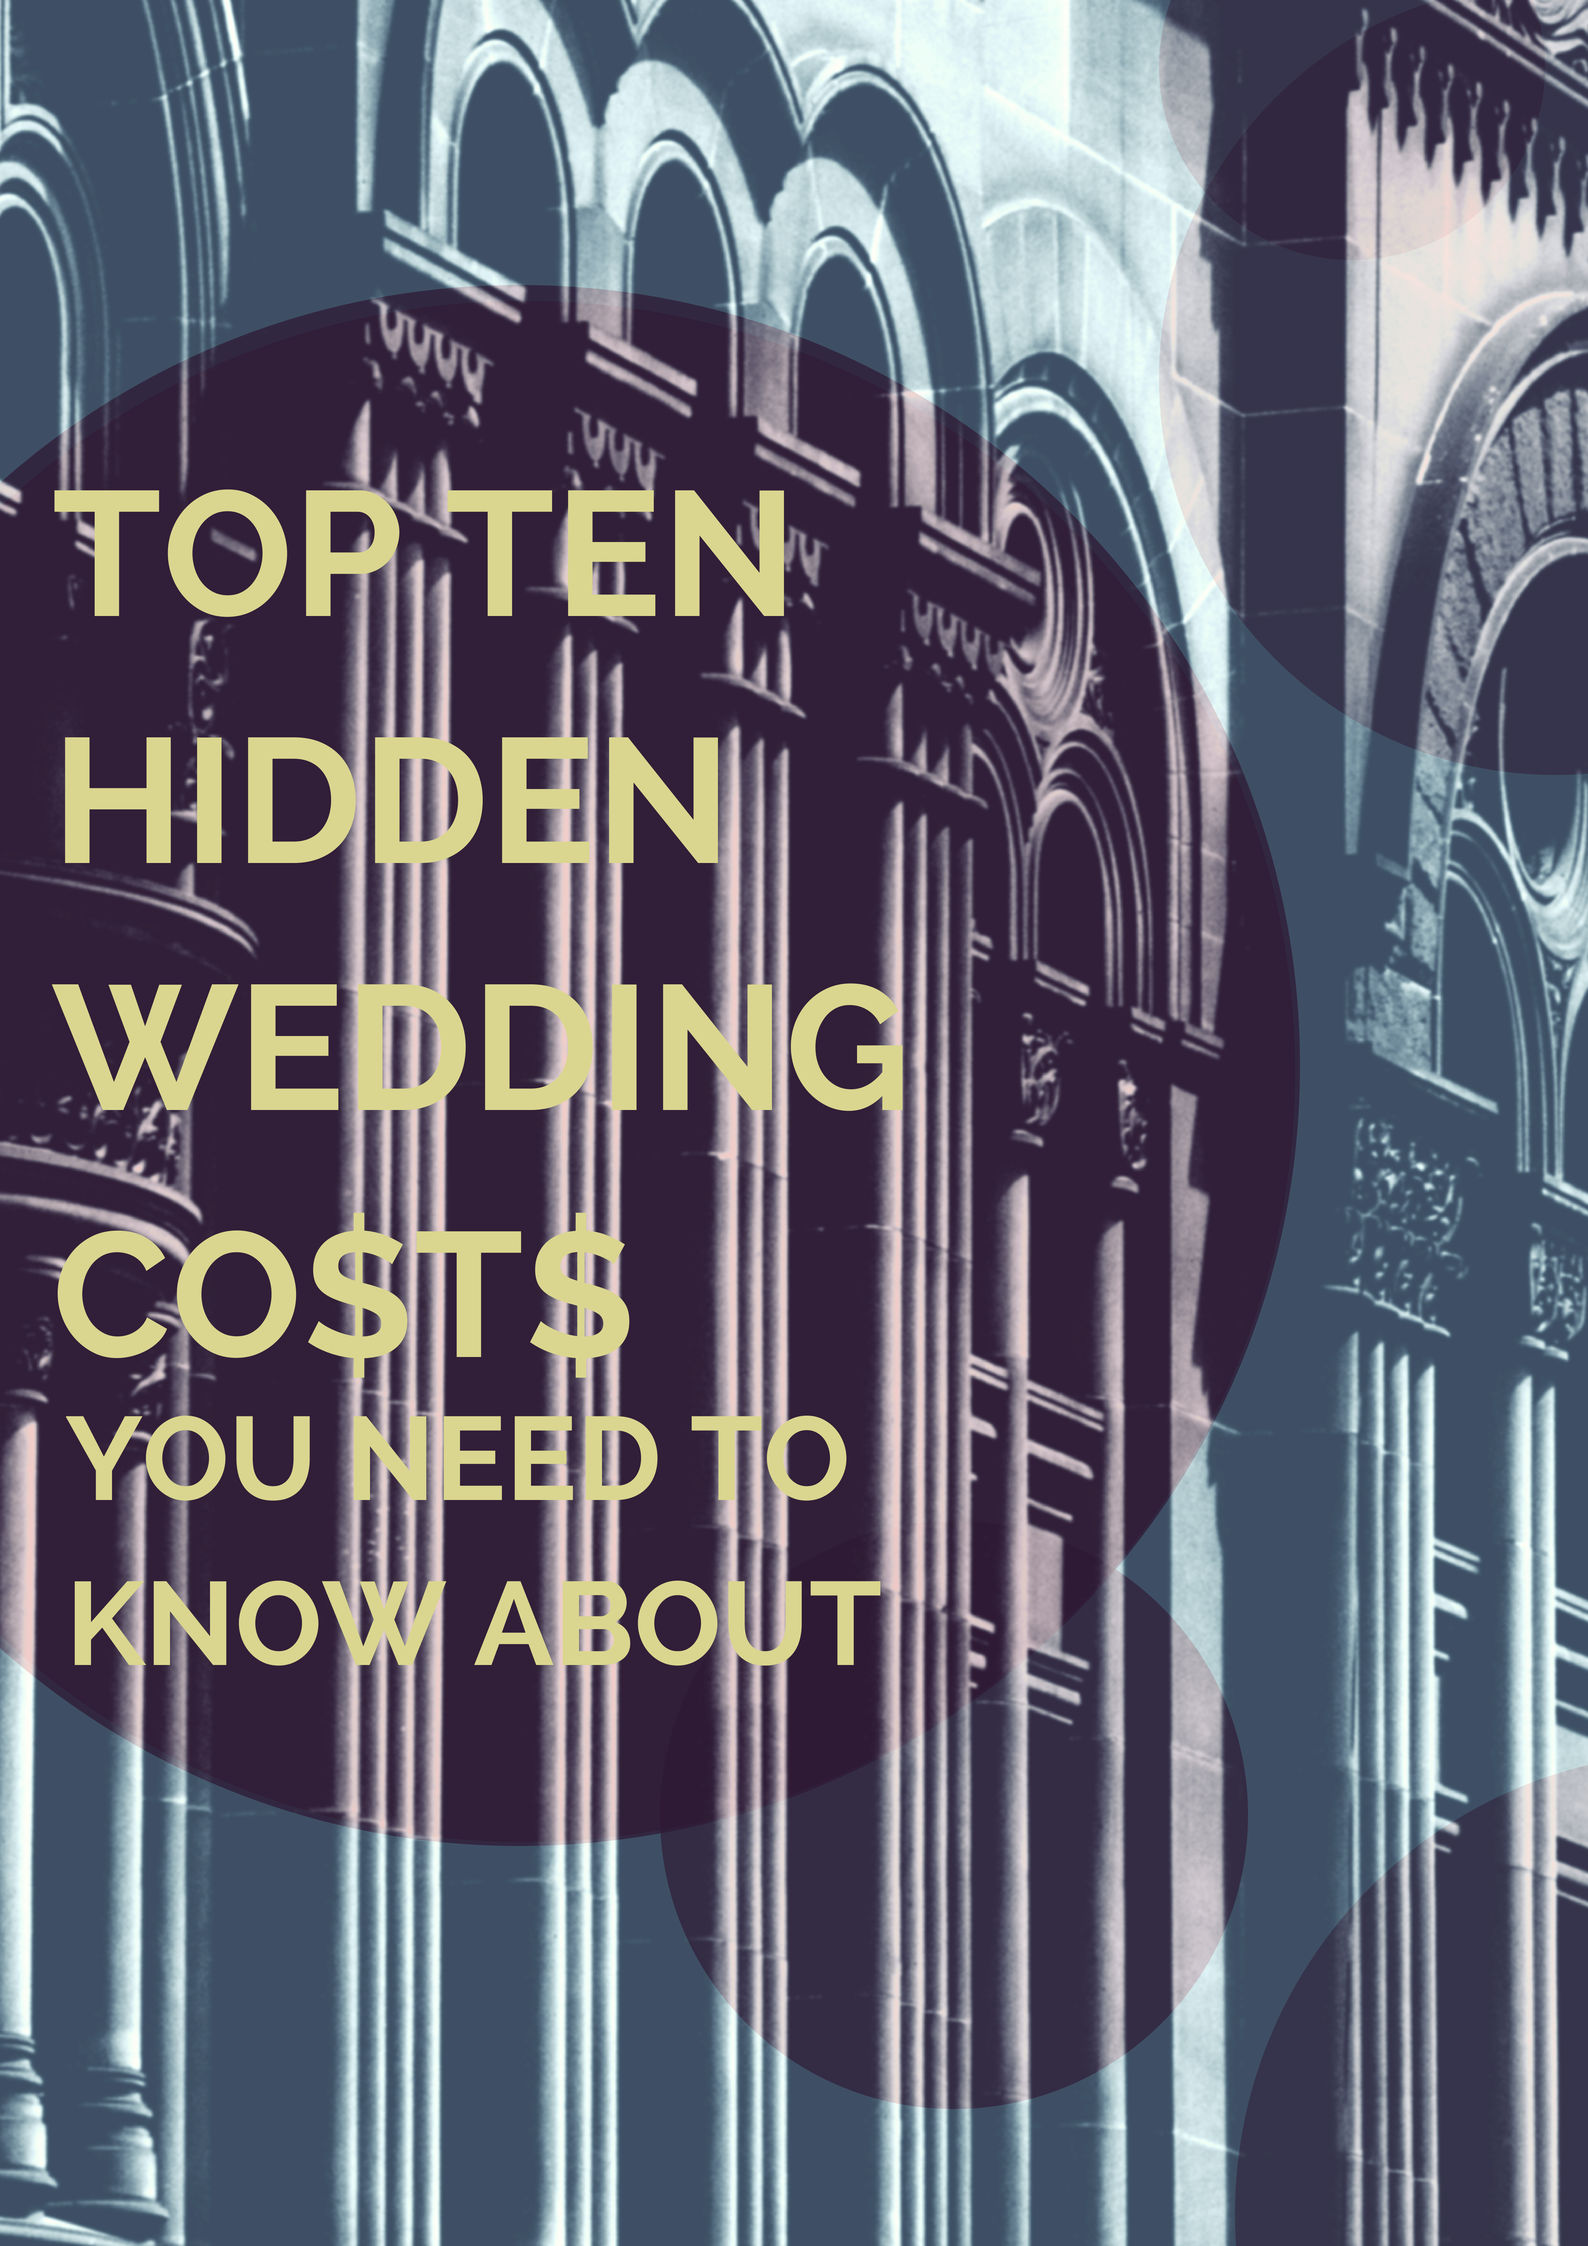 Top Ten Hidden Wedding Costs You Need To Know About